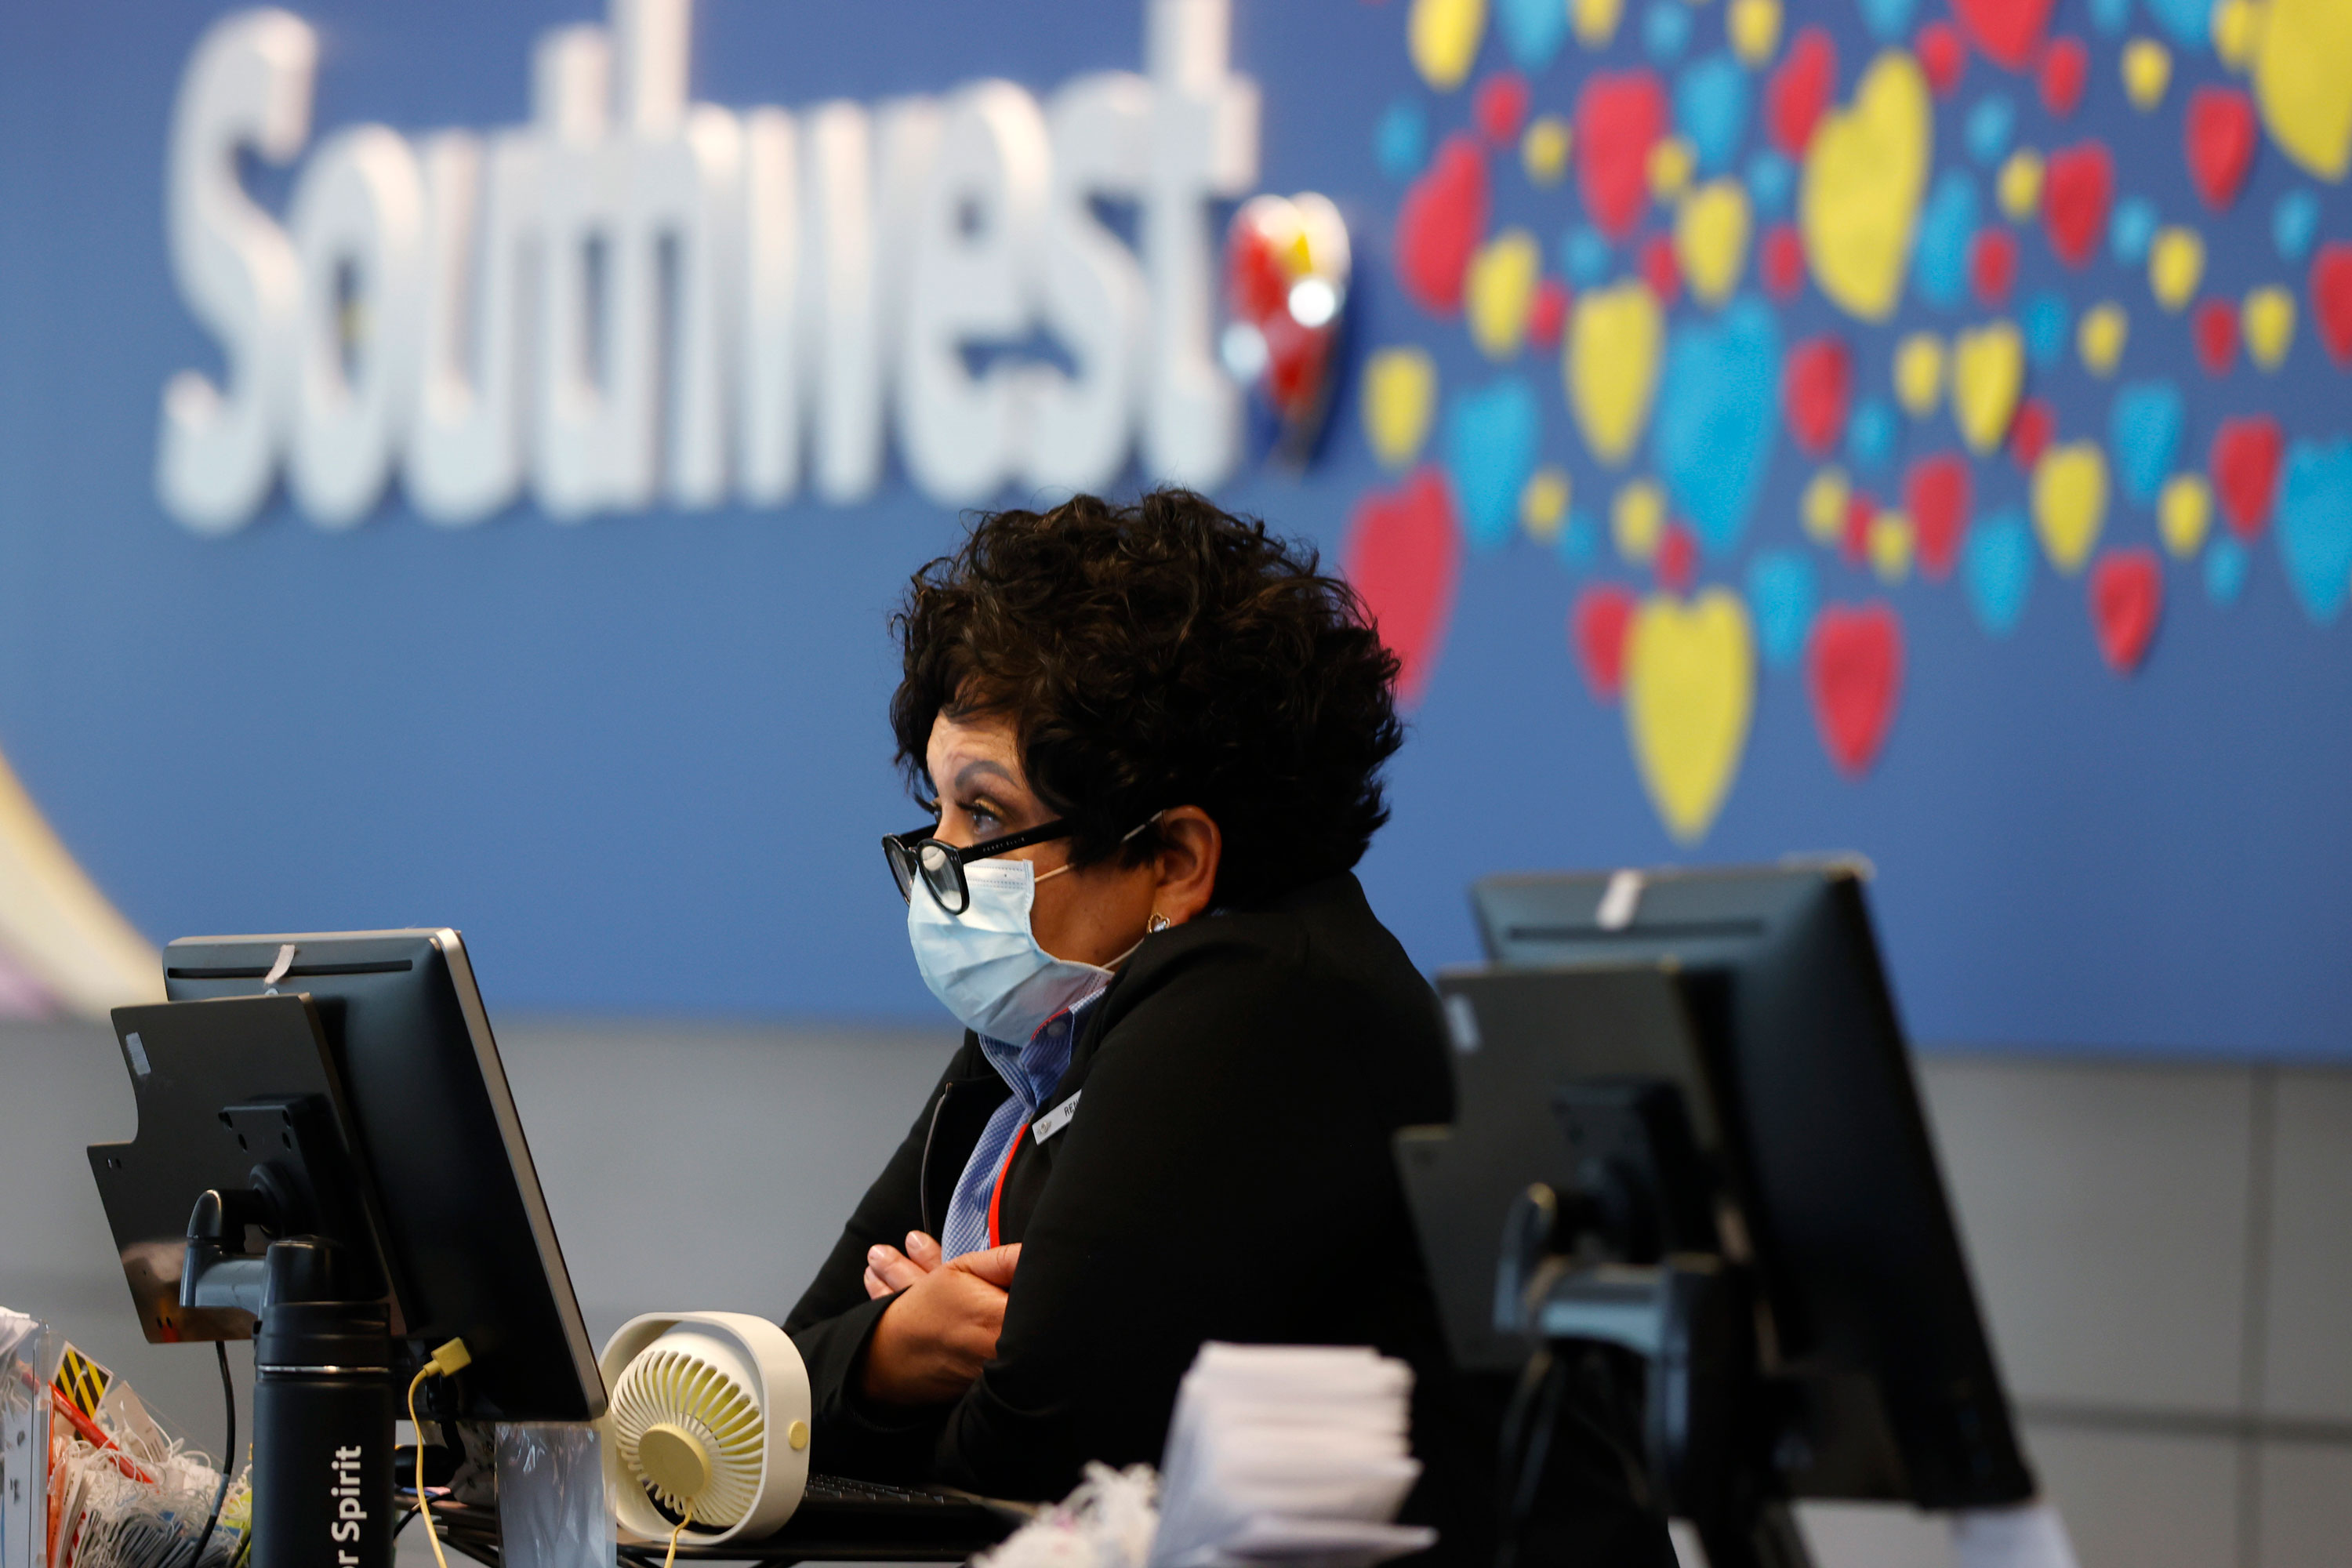 A ticketing agent waits for passengers to check in at the Southwest Airlines counter at Denver International Airport on April 23, in Denver.